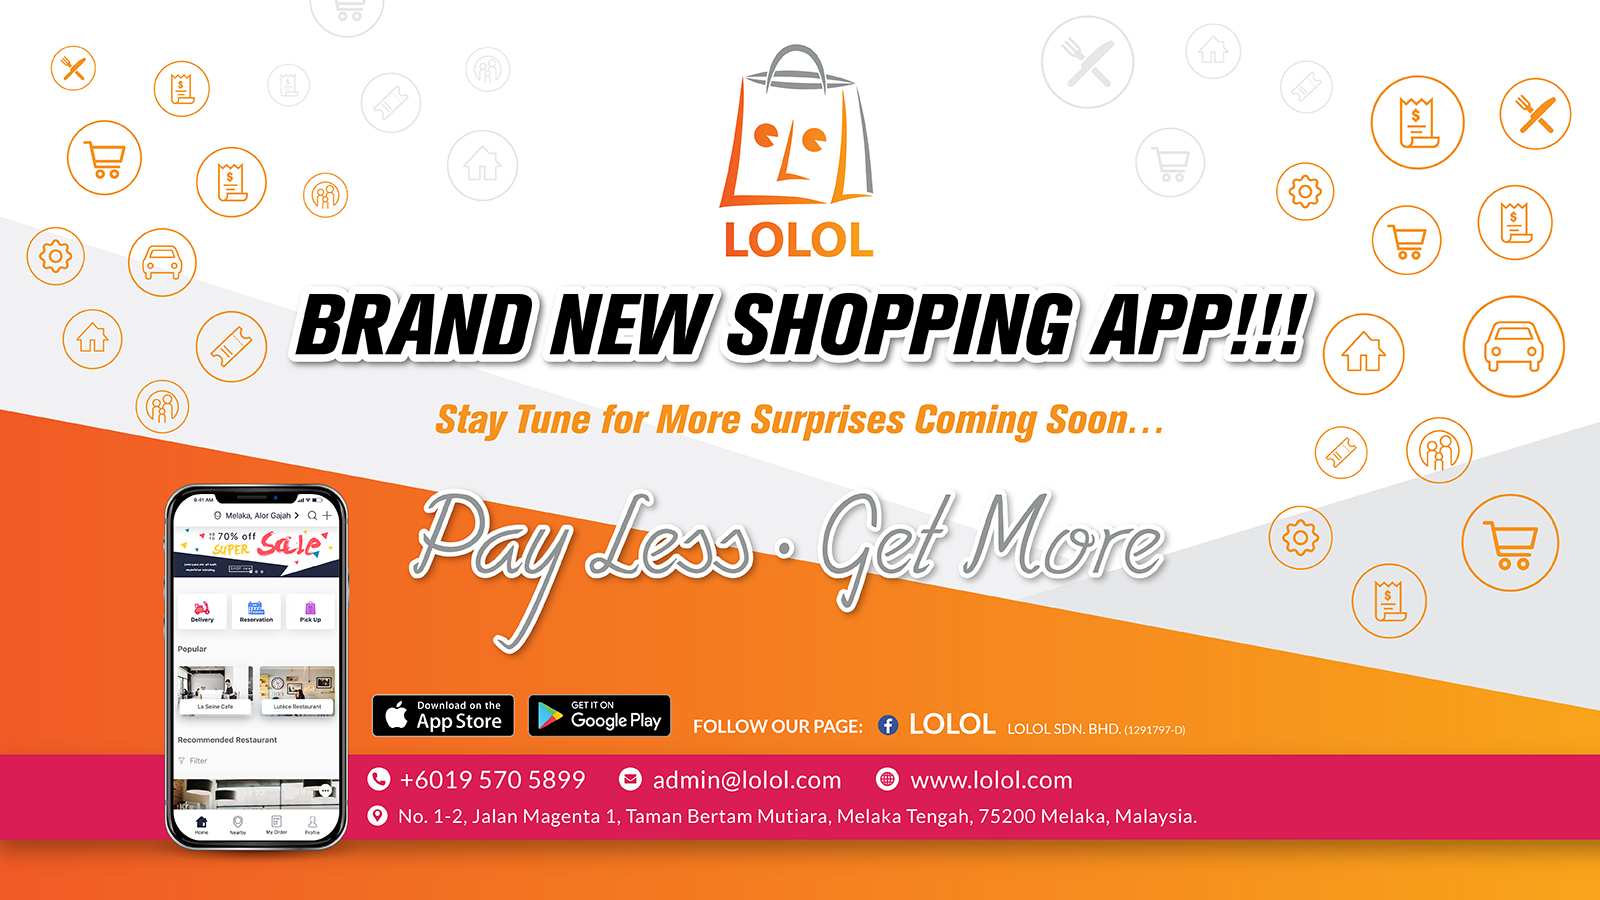 LOLOL - Brand New Shopping App